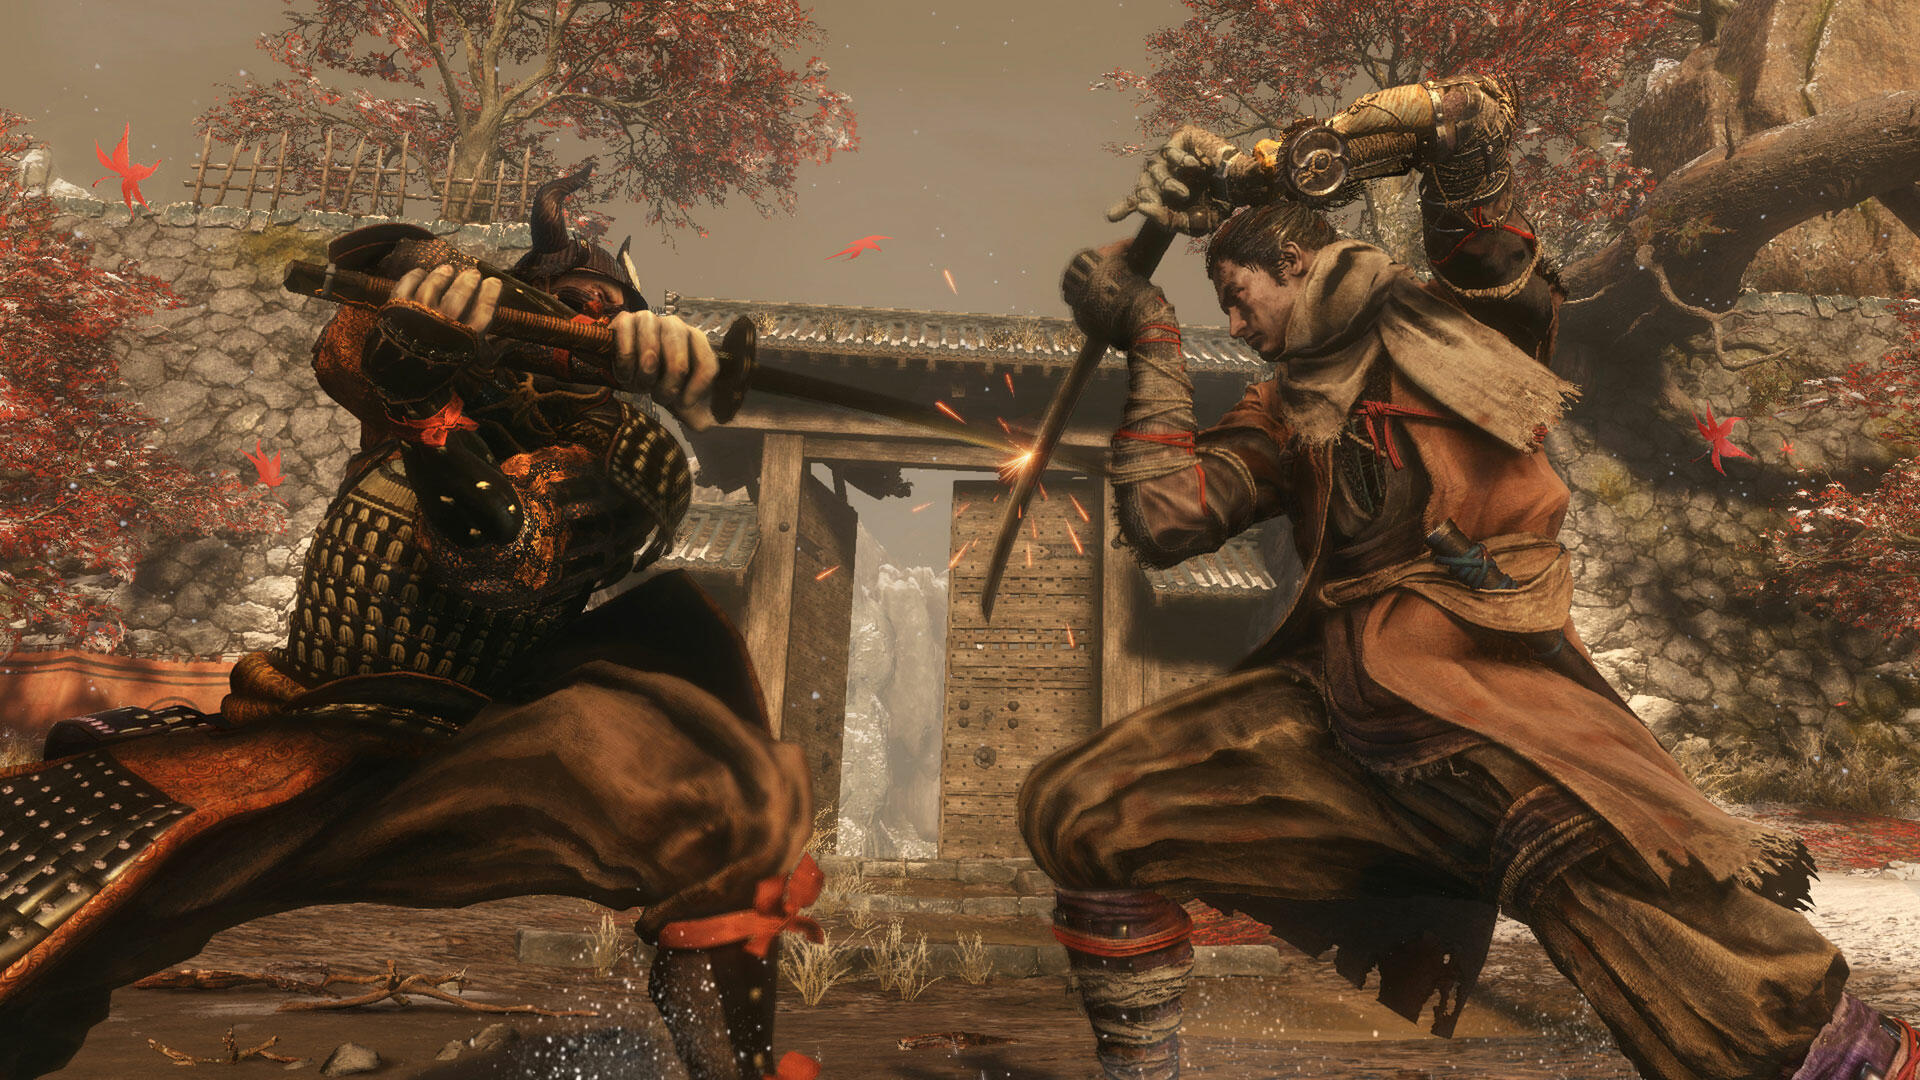 Sekiro Guardian Ape Immortality Severed - How to Unlock the Guardian Ape - Immortality Severed Achievement in Sekiro: Shadows Die Twice